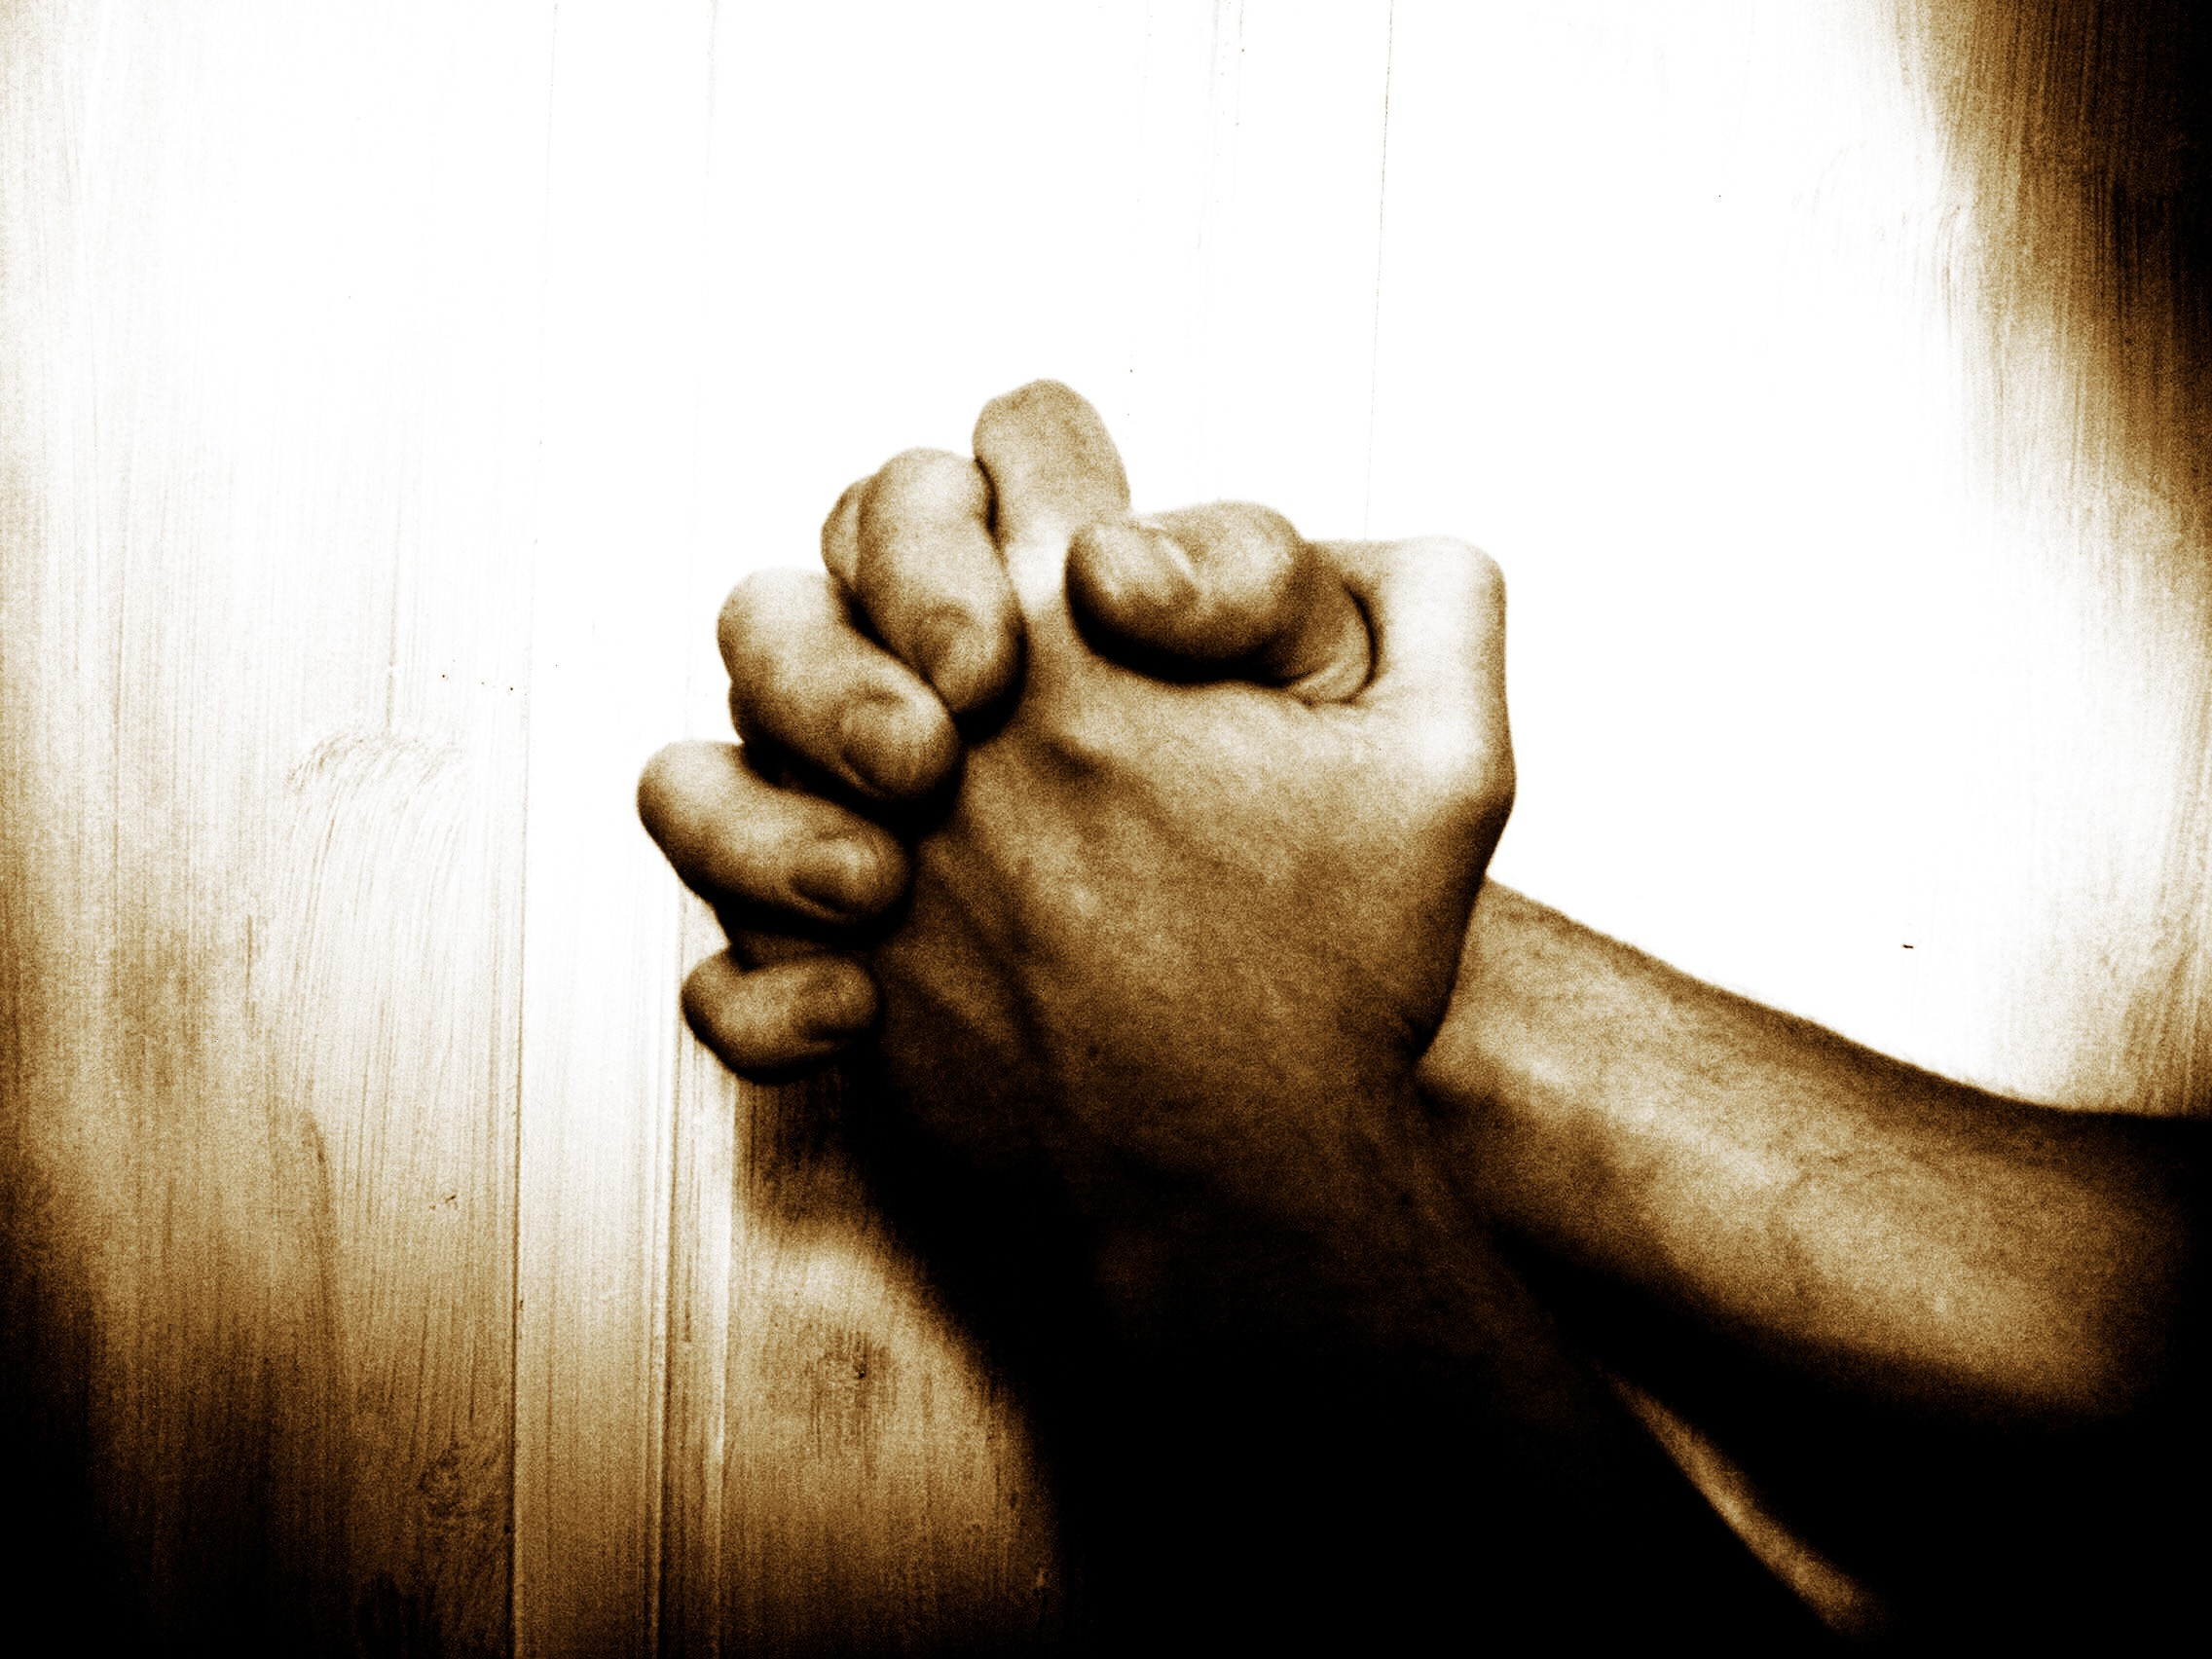 praying hands background download free amazing high resolution